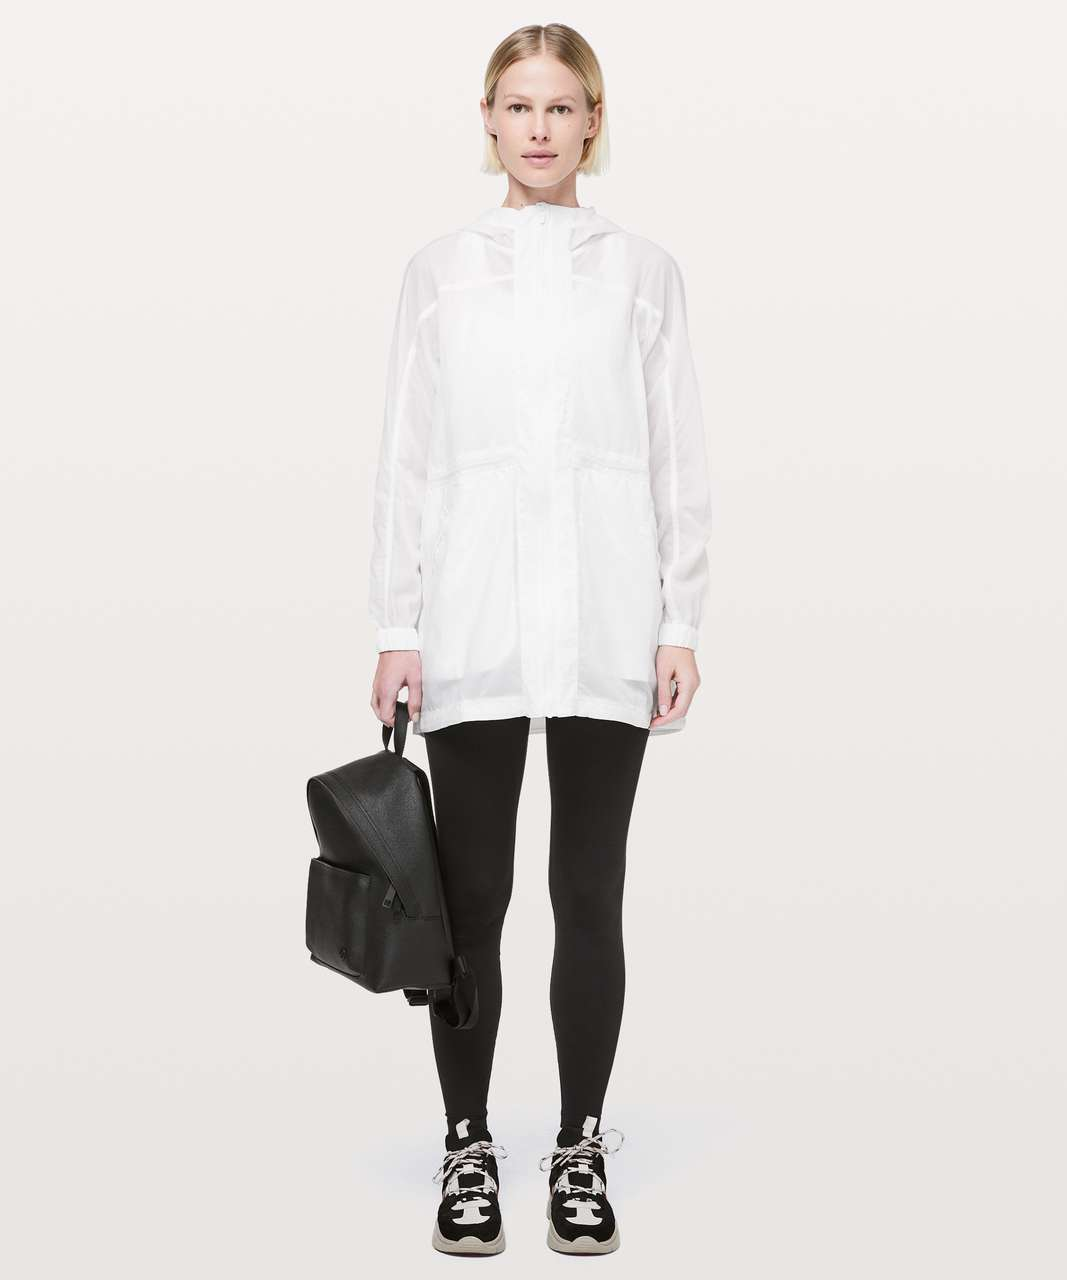 Lululemon In The Clear Jacket - White